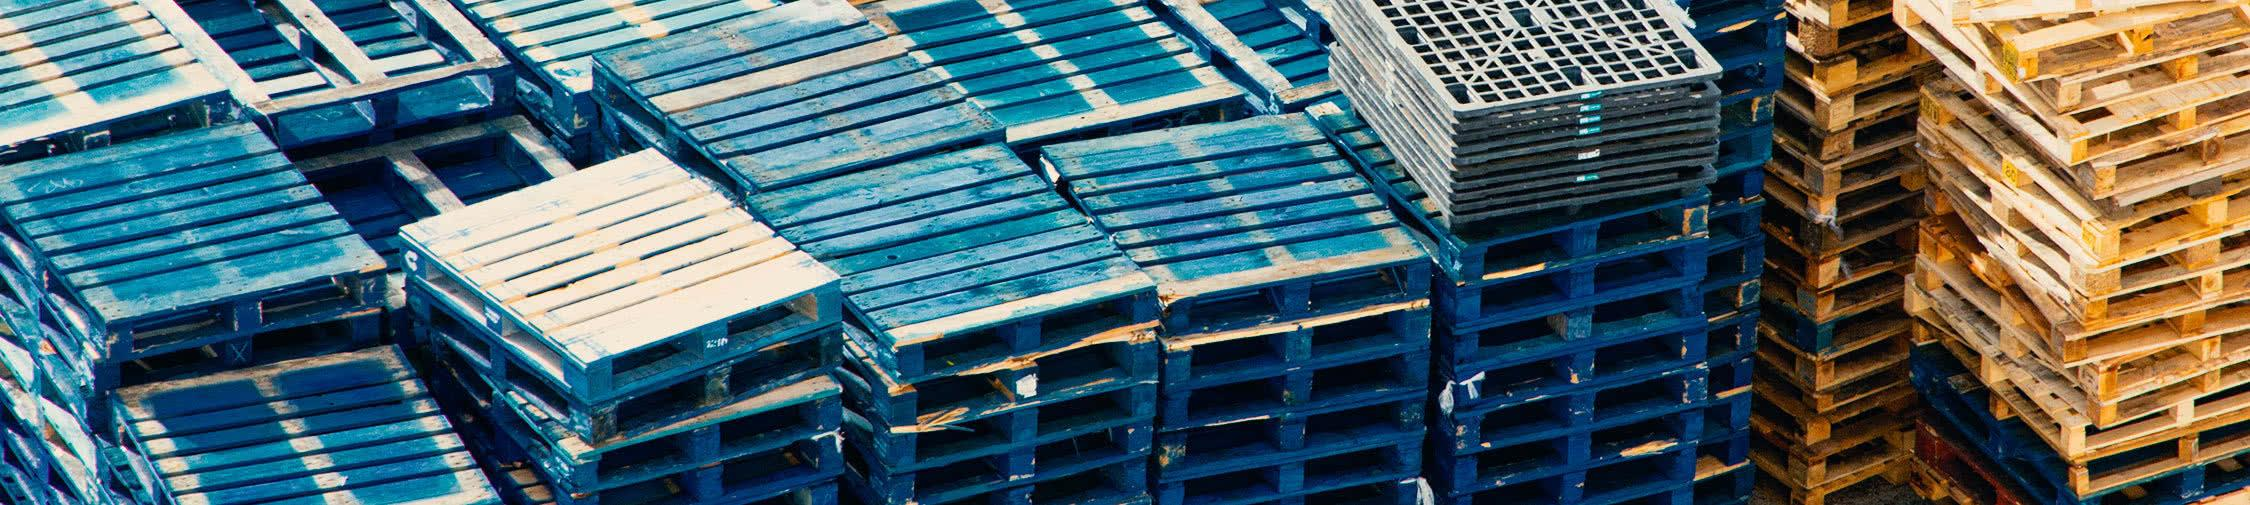 wood-pallet-recycling-solutions